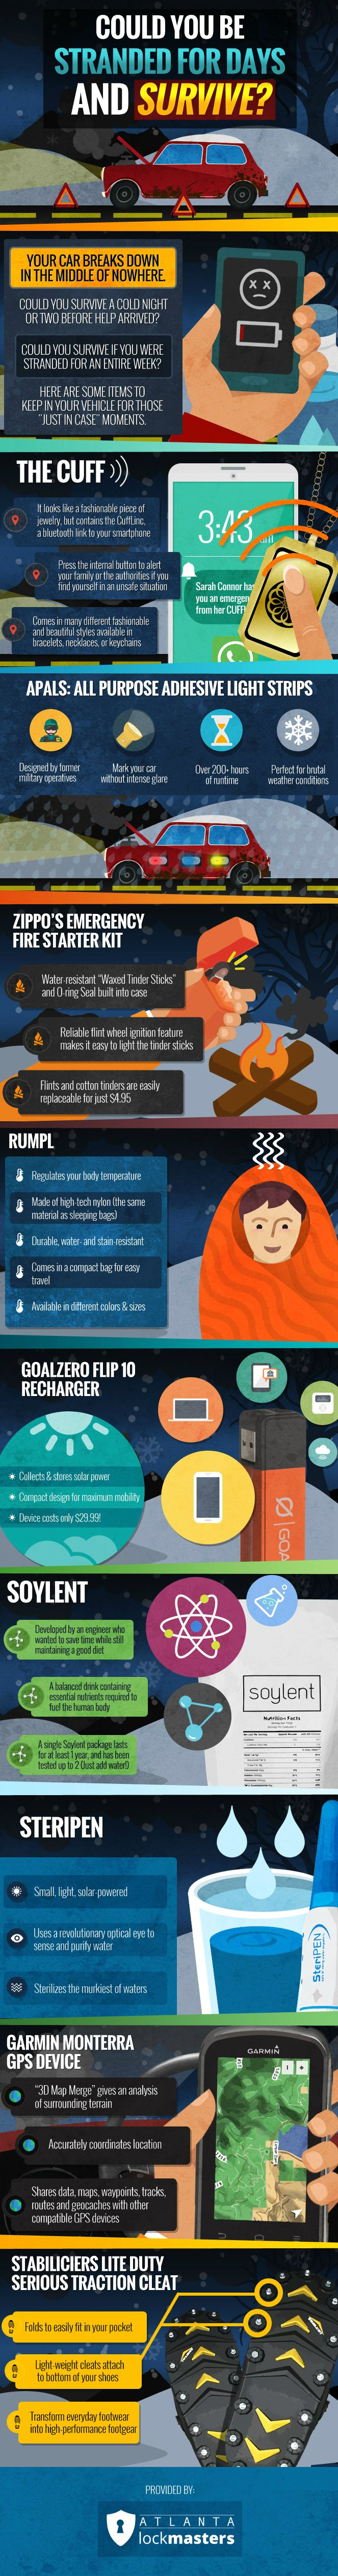 Could you be stranded for days and survive infographic